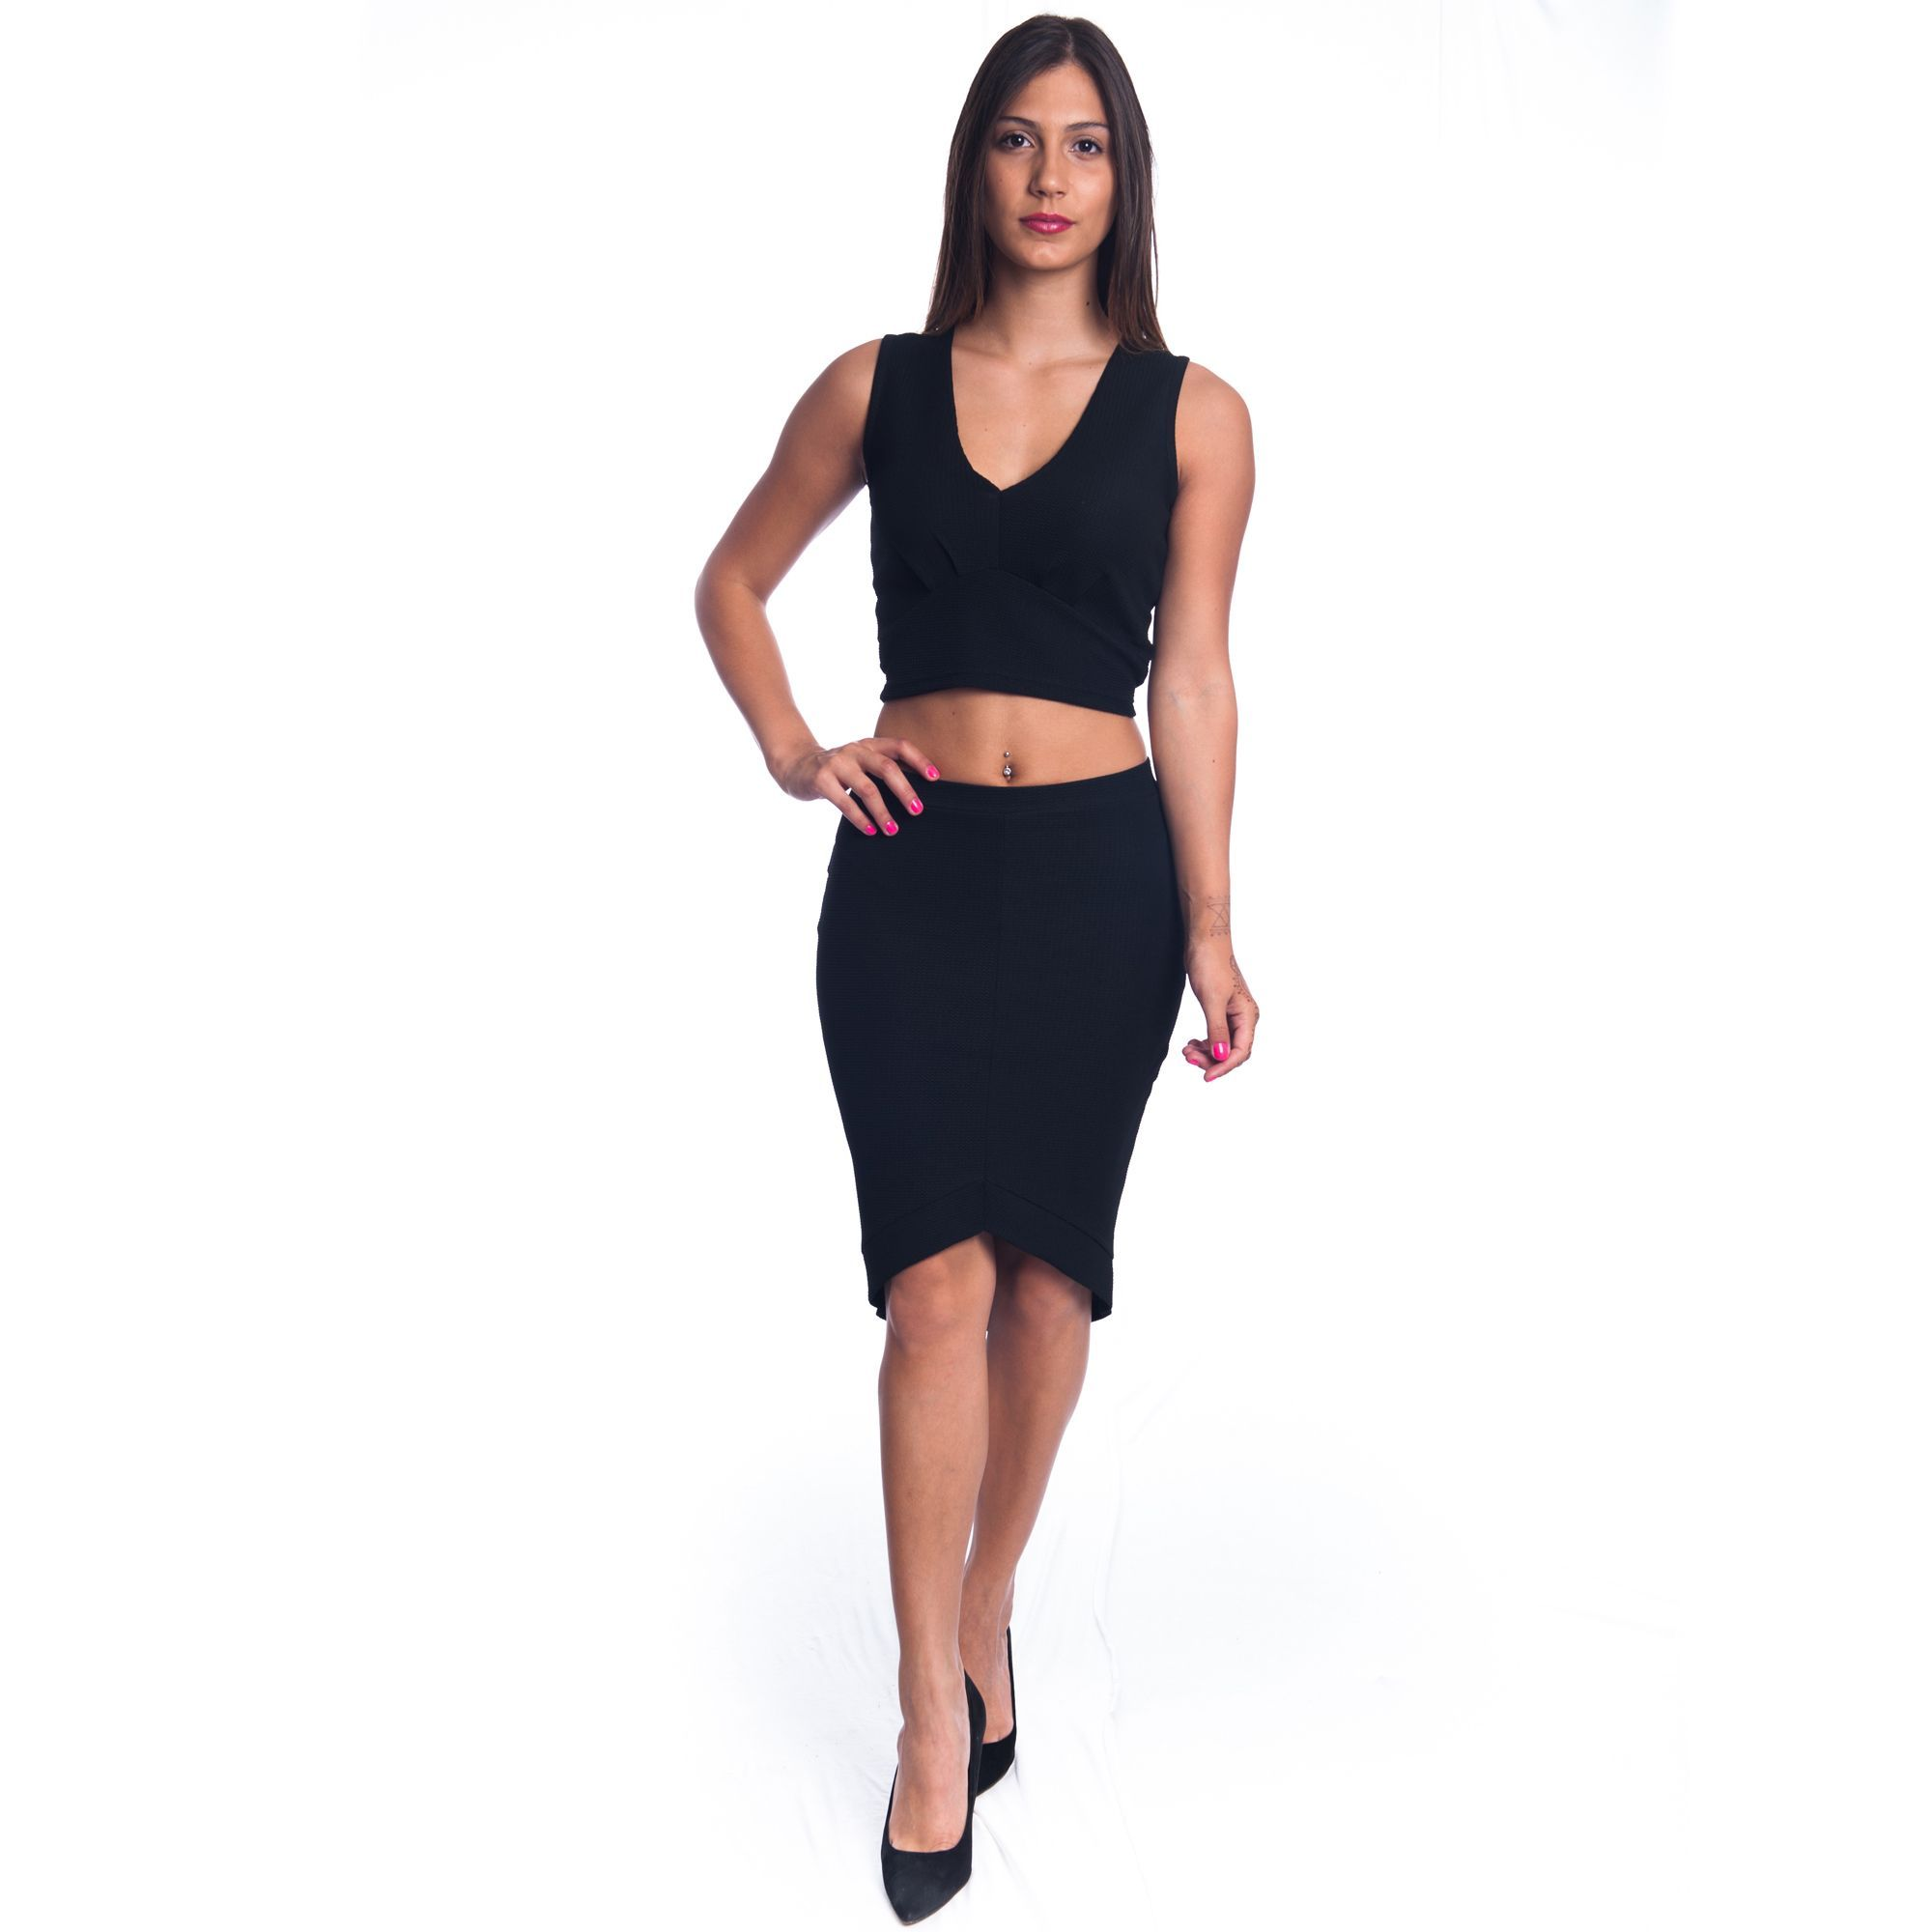 Special One Women's 2-piece Crop Top and Mini Skirt Outfit